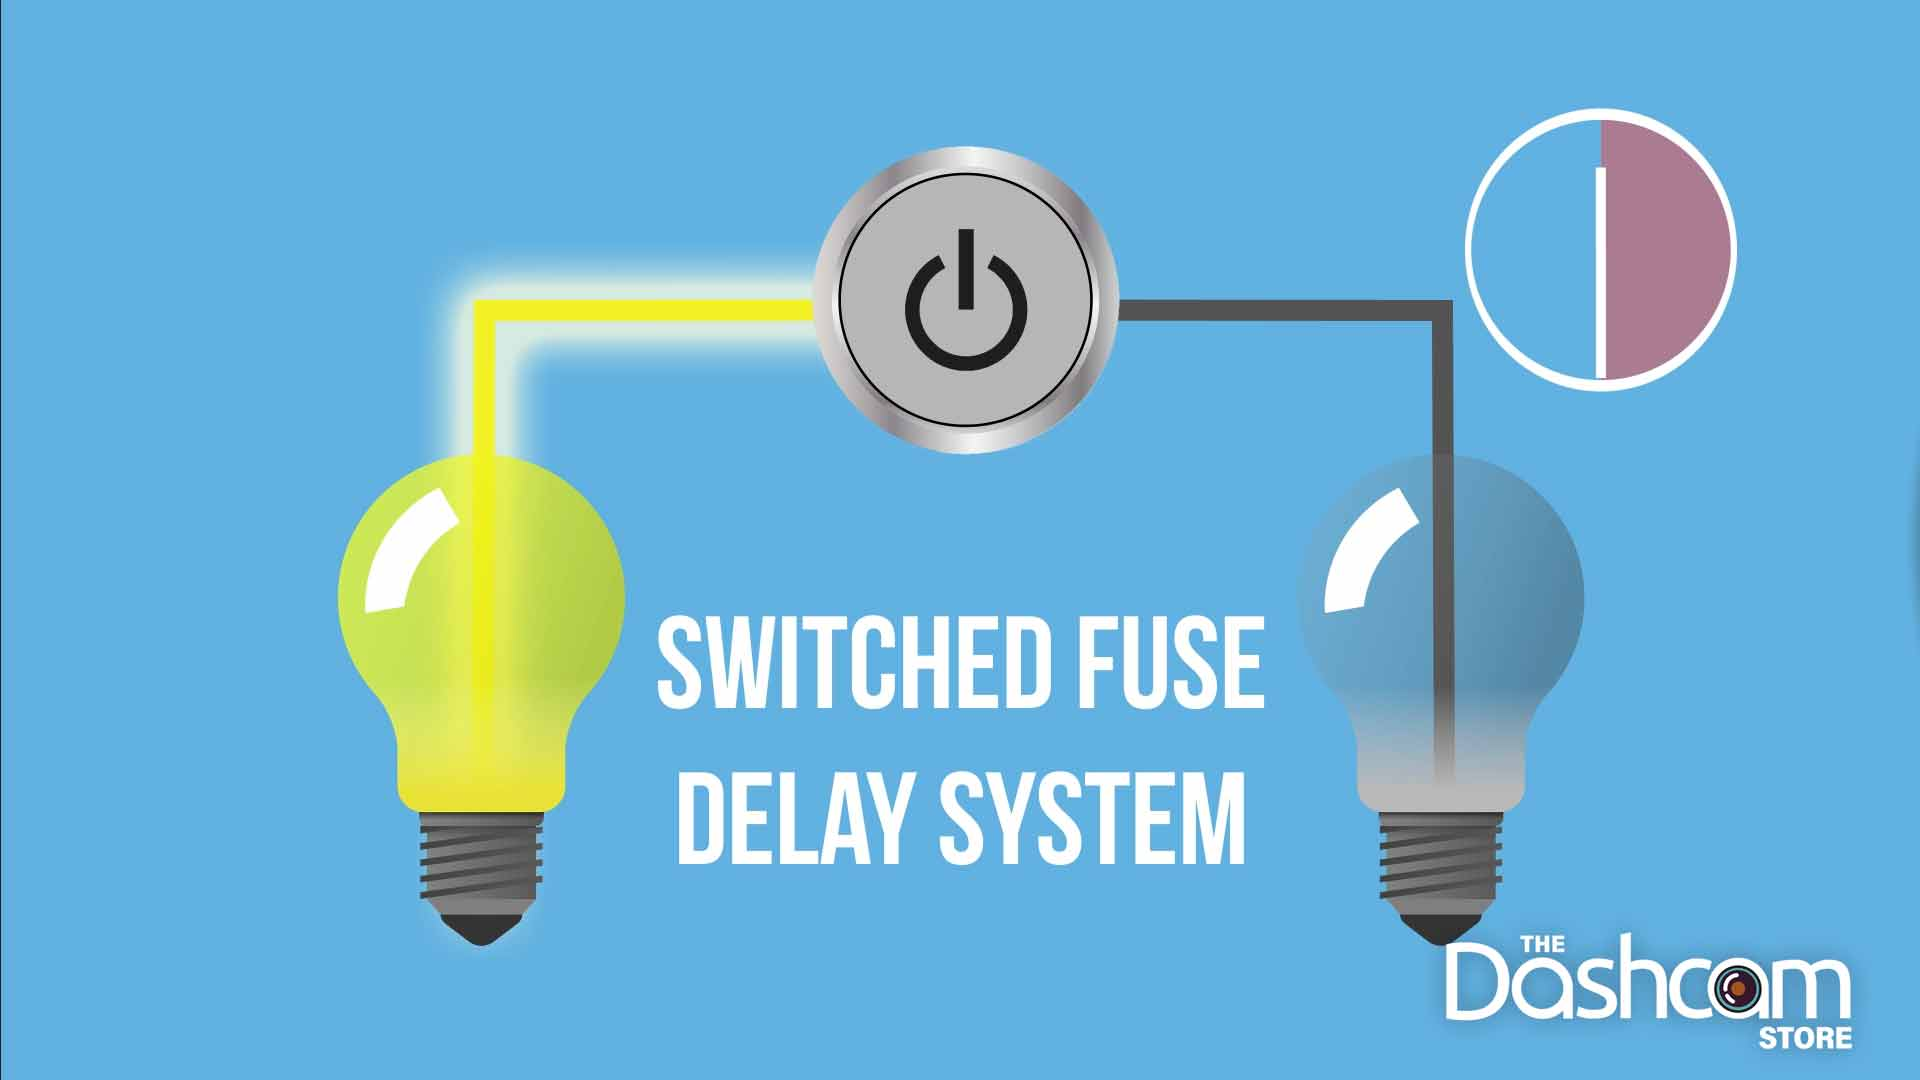 hight resolution of switched fuse delay systems keeps switched fuse circuits on for up to 30 minutes after